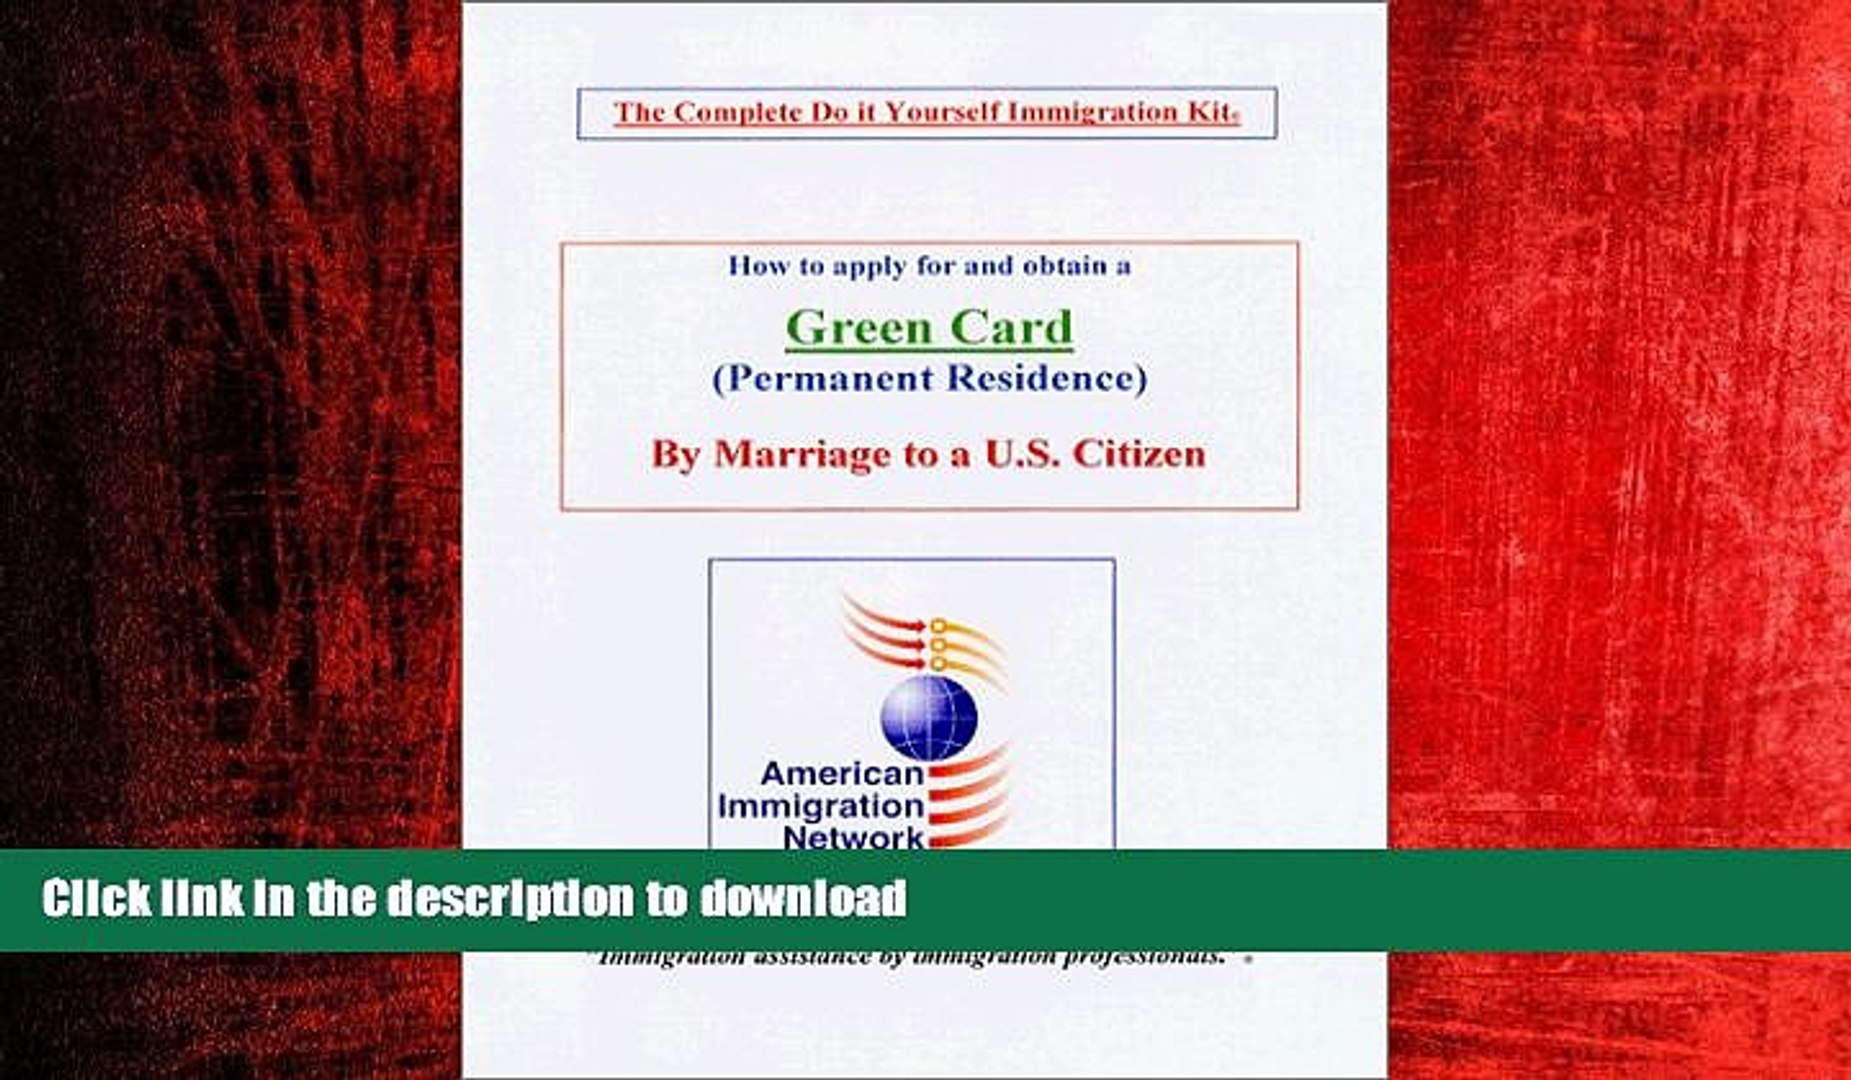 READ THE NEW BOOK How to apply for and obtain a Green card by Marriage to a U.S. Citizen - The